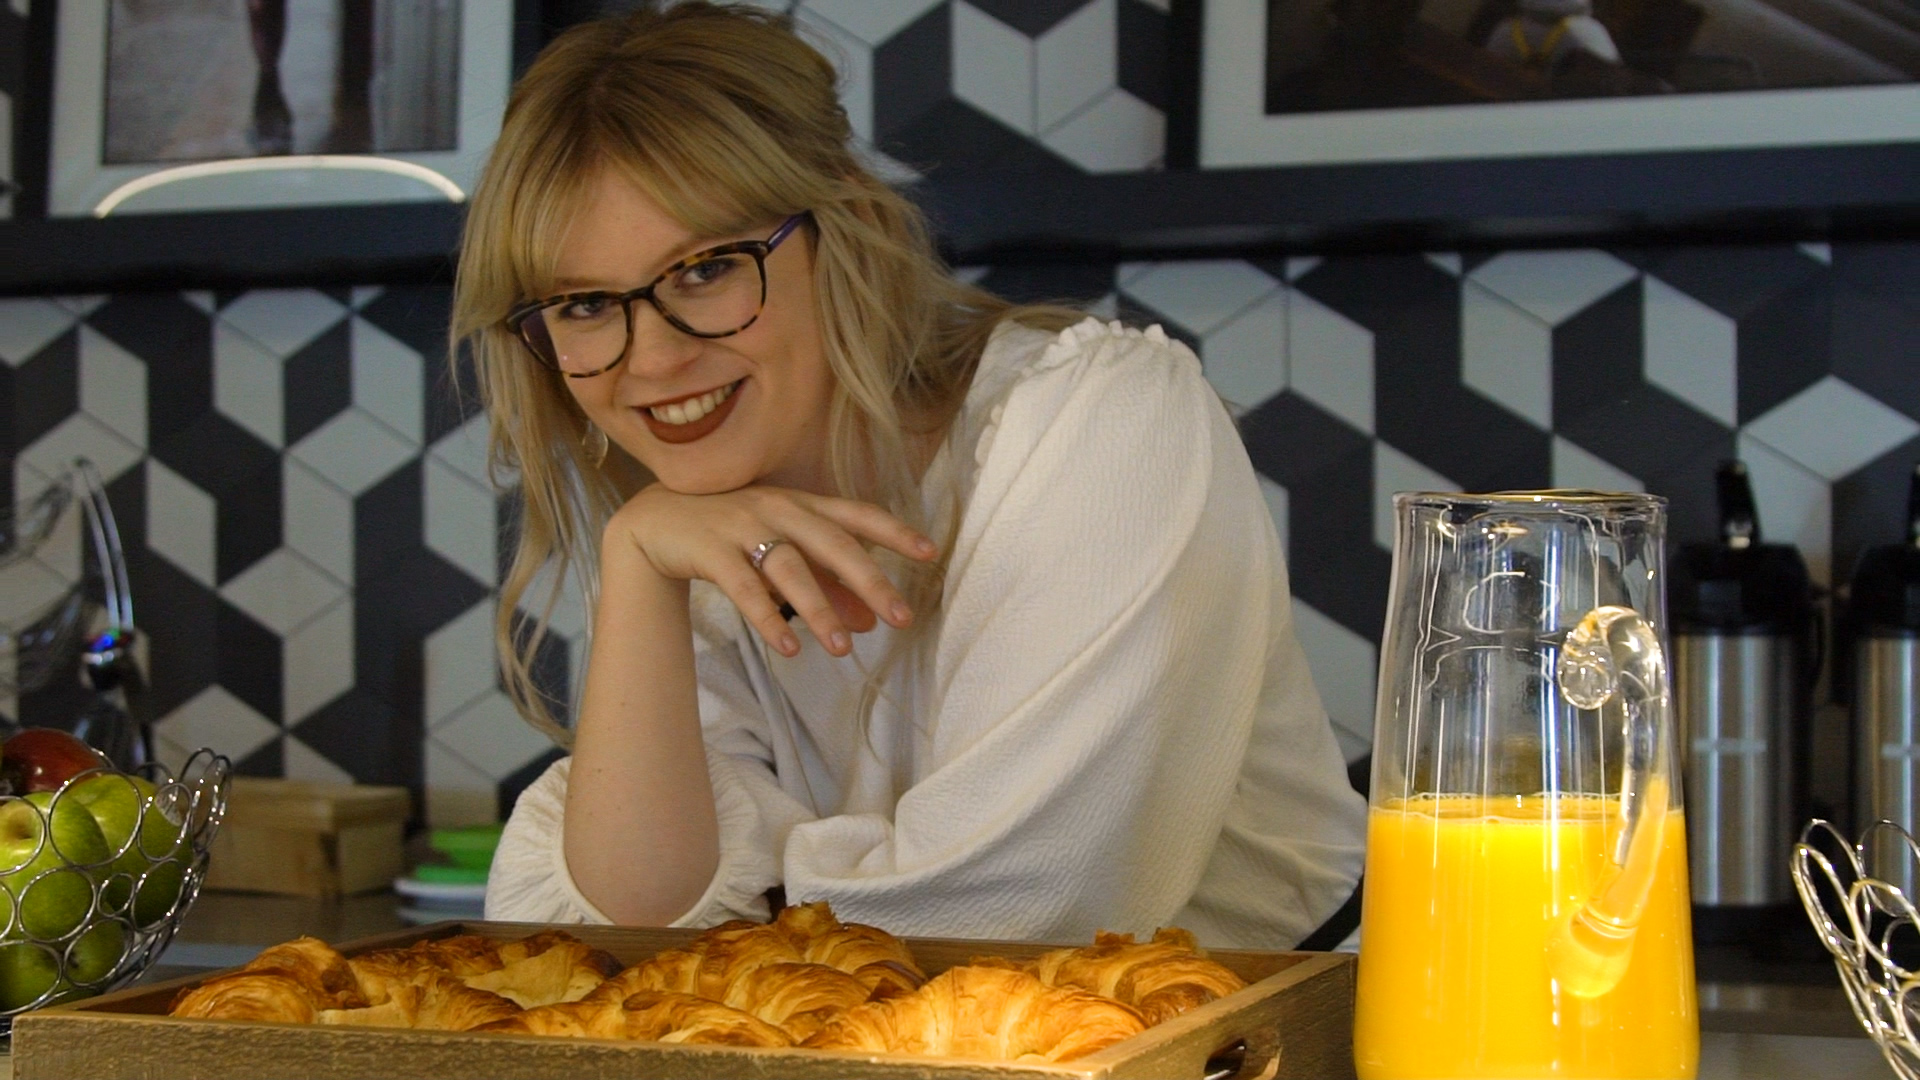 Rebecca Jennings in glasses over a tray of croissants